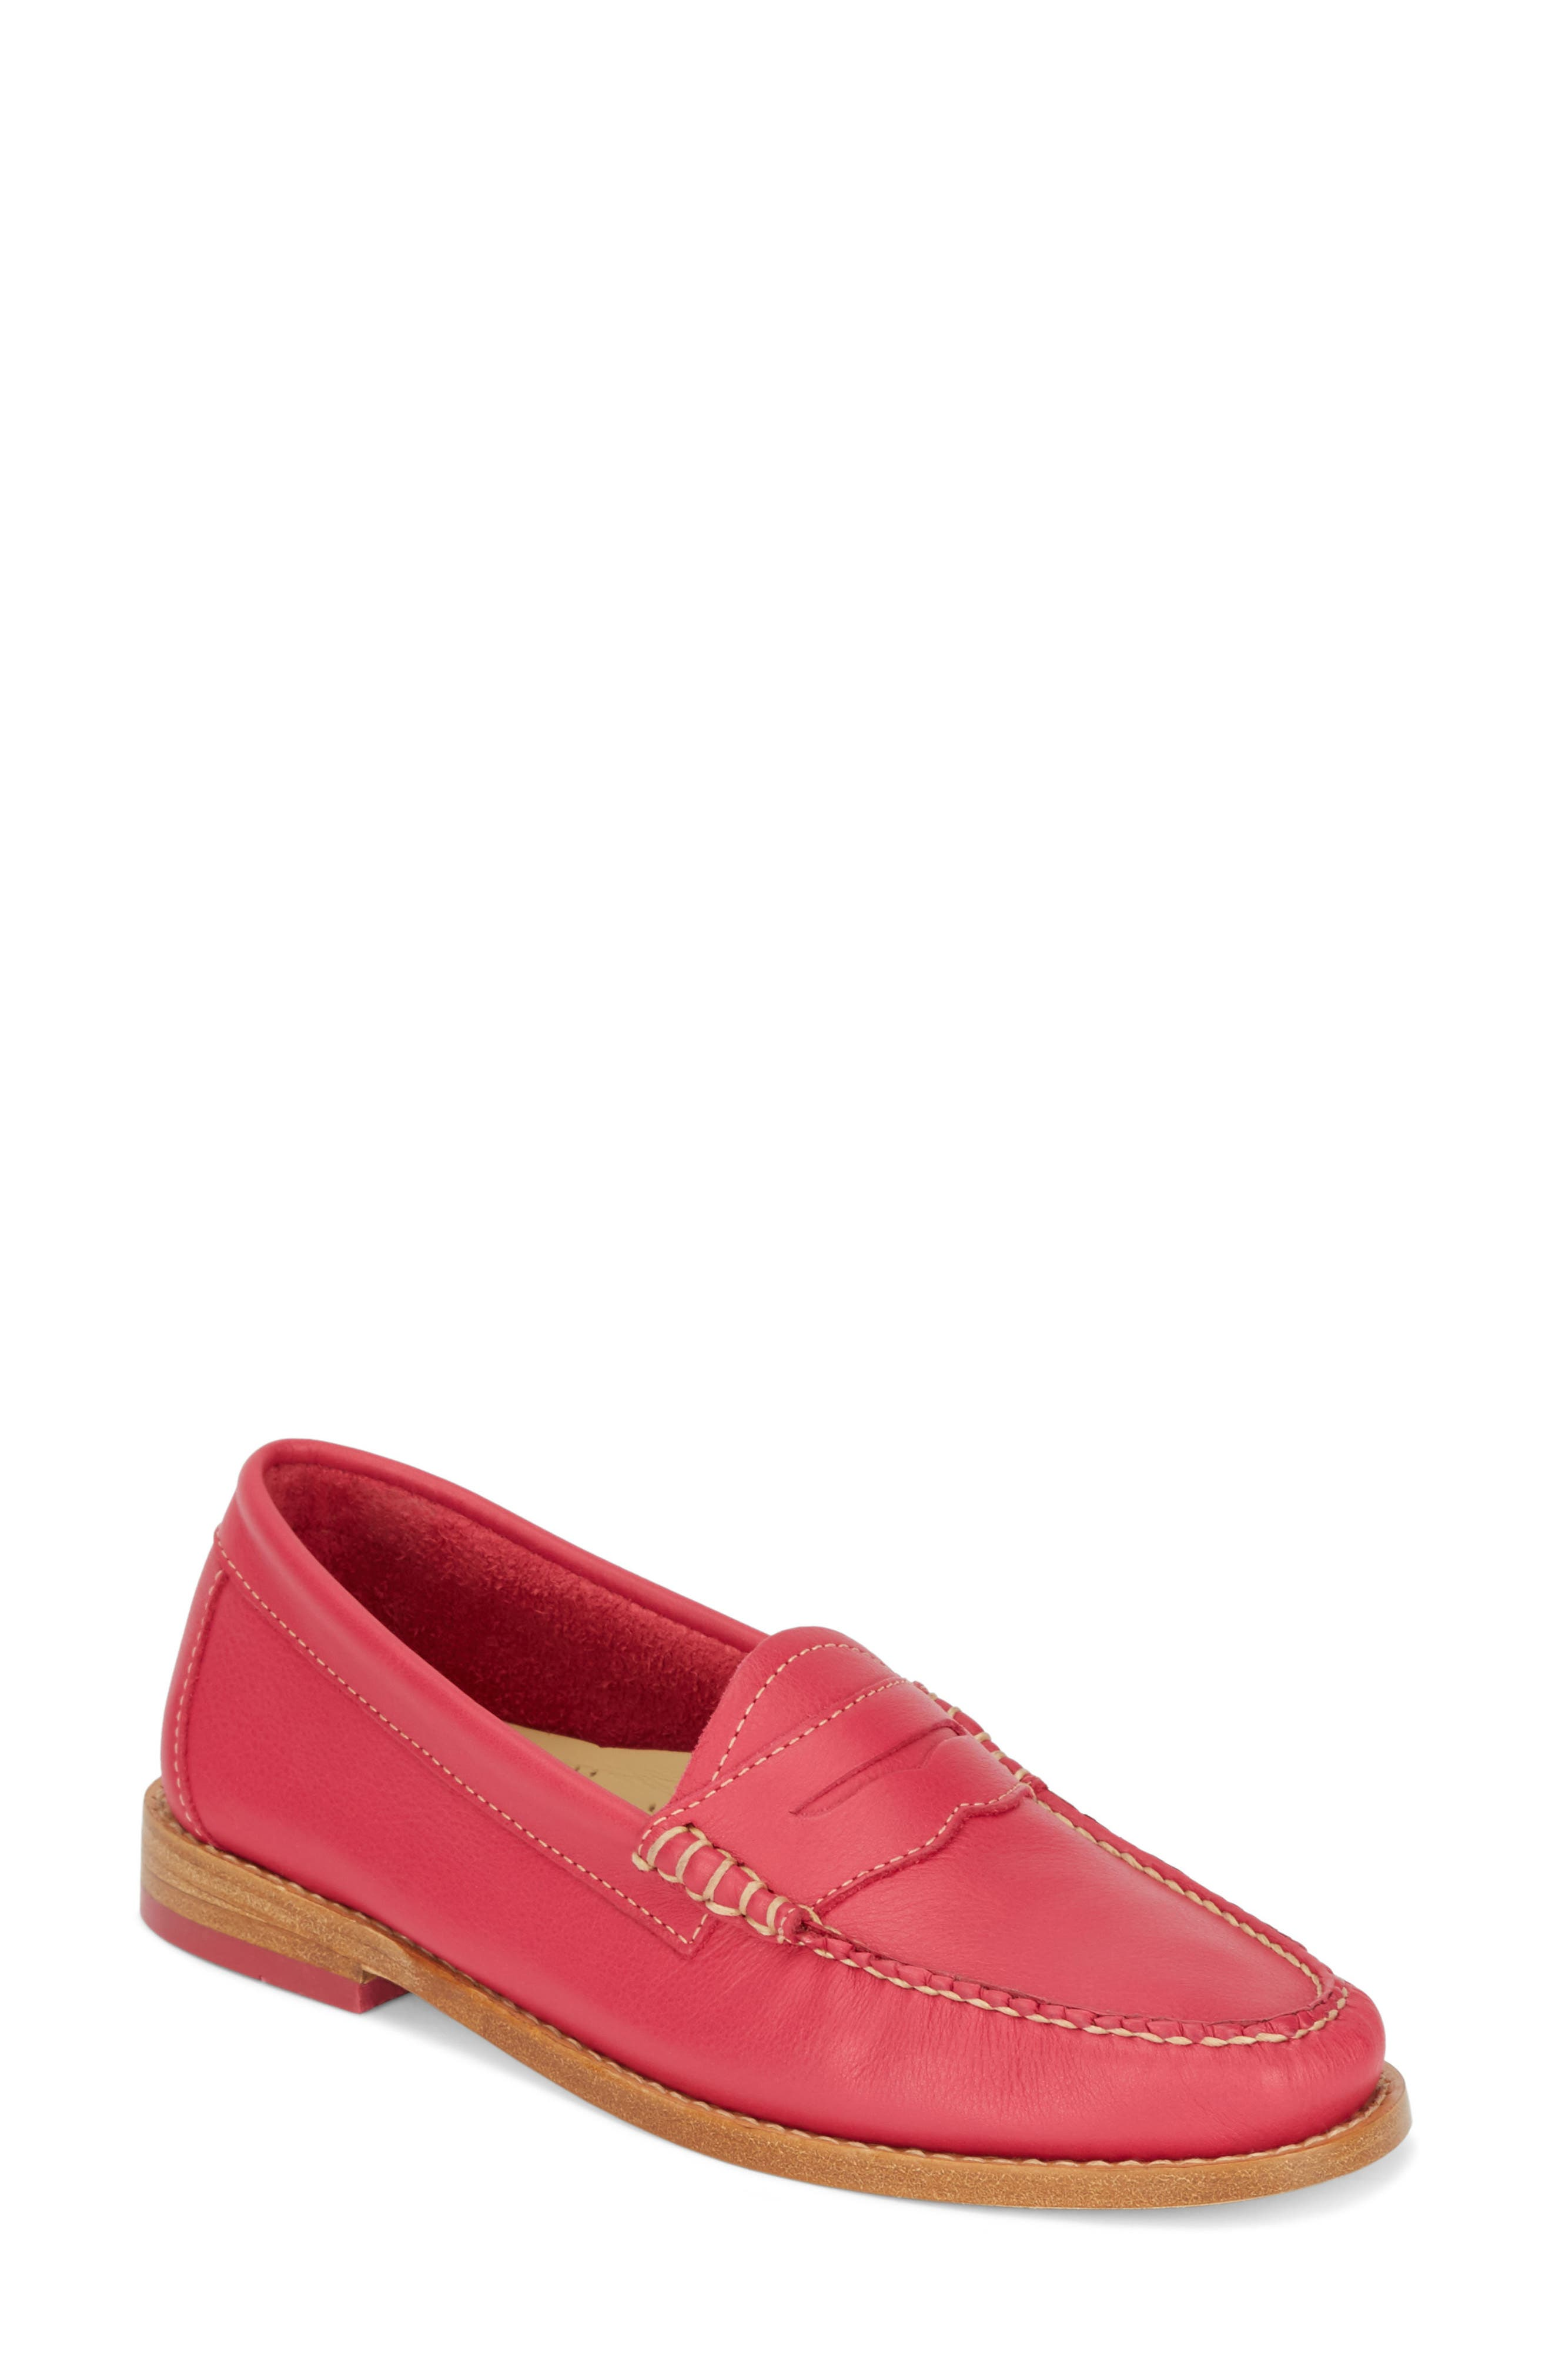 G.H. BASS & CO. 'Whitney' Loafer in Berry Pink Leather